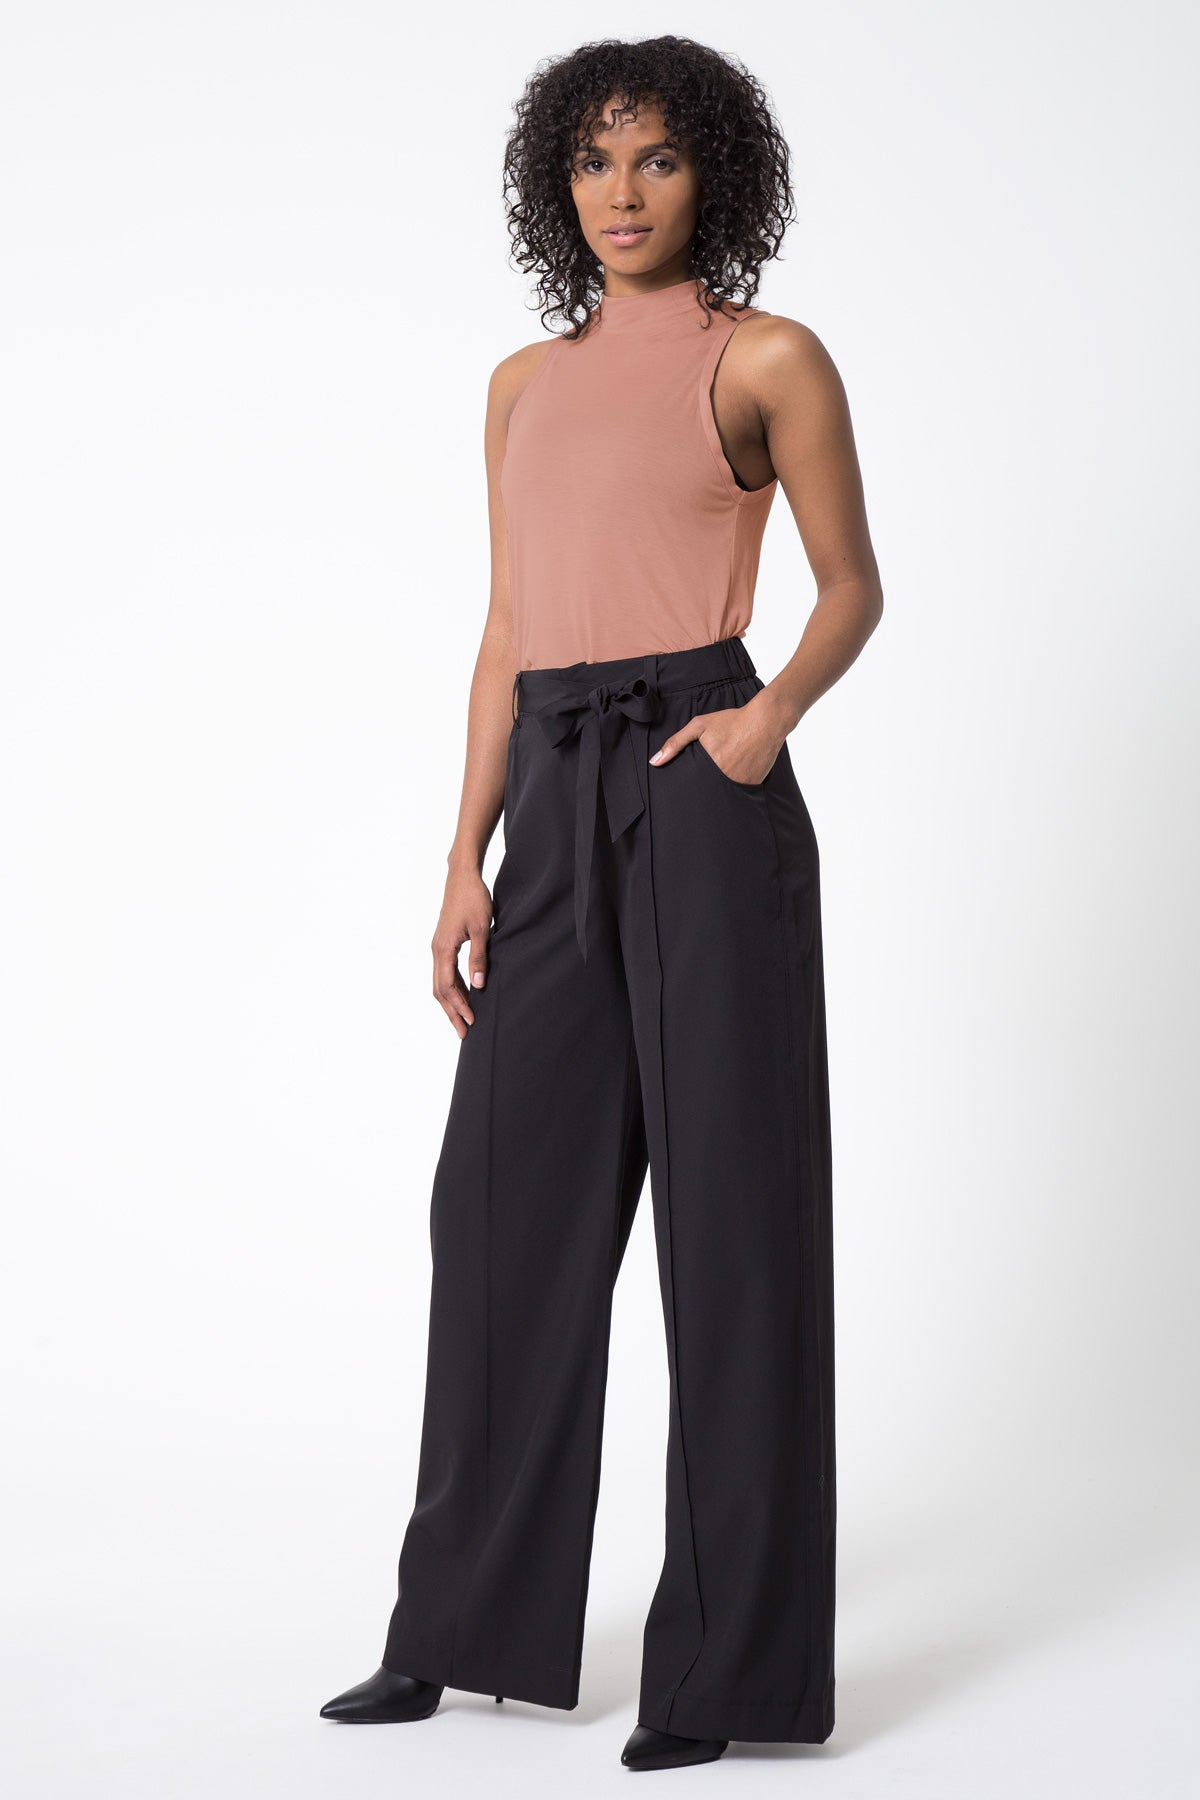 0644a4fa35b96e About Town Wide Leg Pant – MPG Sport USA